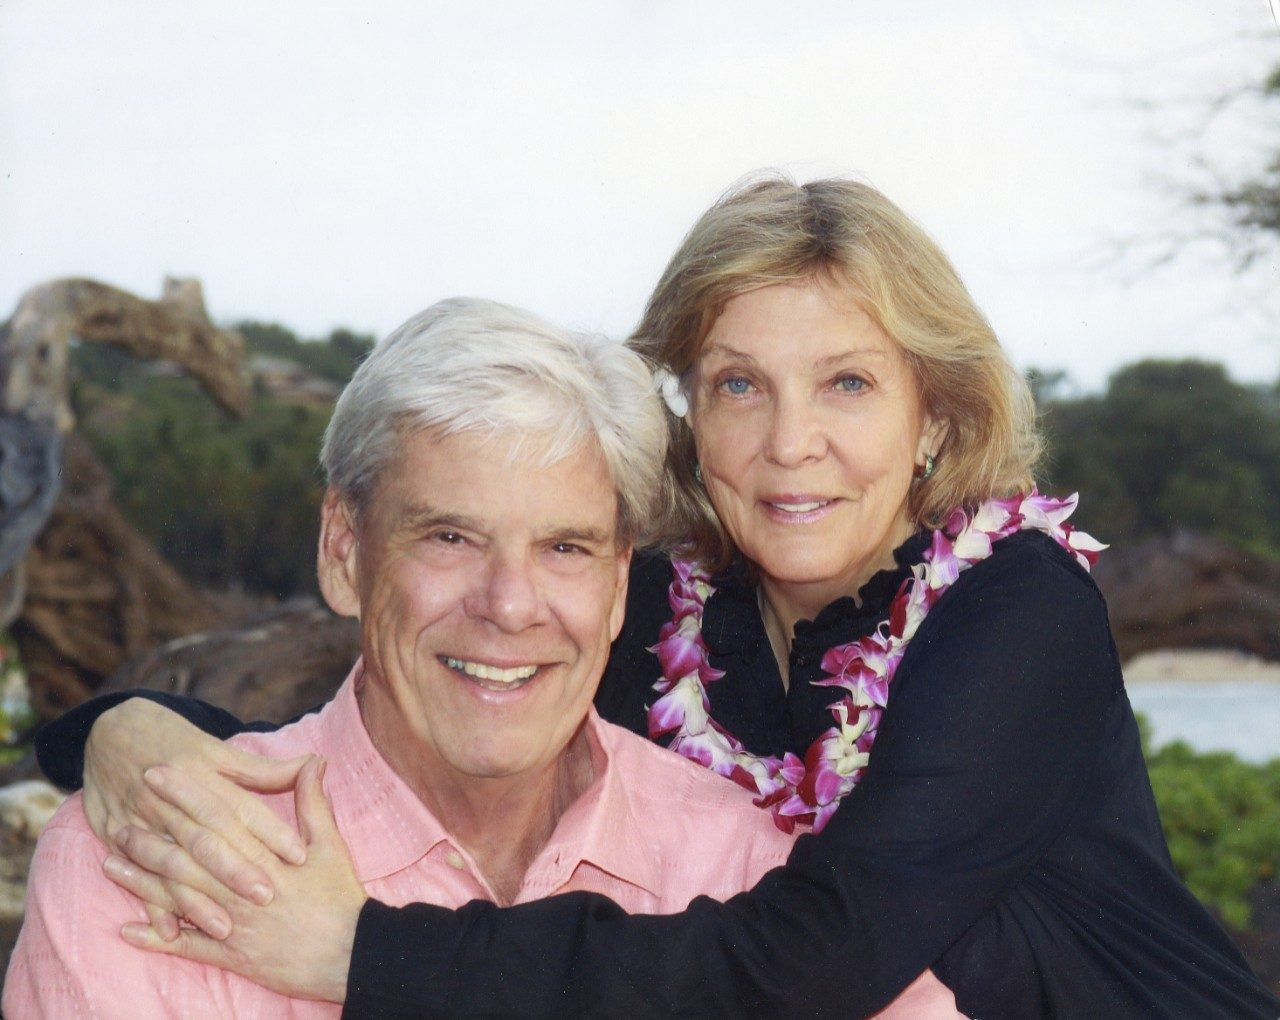 Wayne Gibbens, a member of the MD Anderson Cancer Center Board of Visitors, reflects on his wife's melanoma cancer survivorship and their family's longtime commitment to MD Anderson Cancer Center's mission to end cancer.